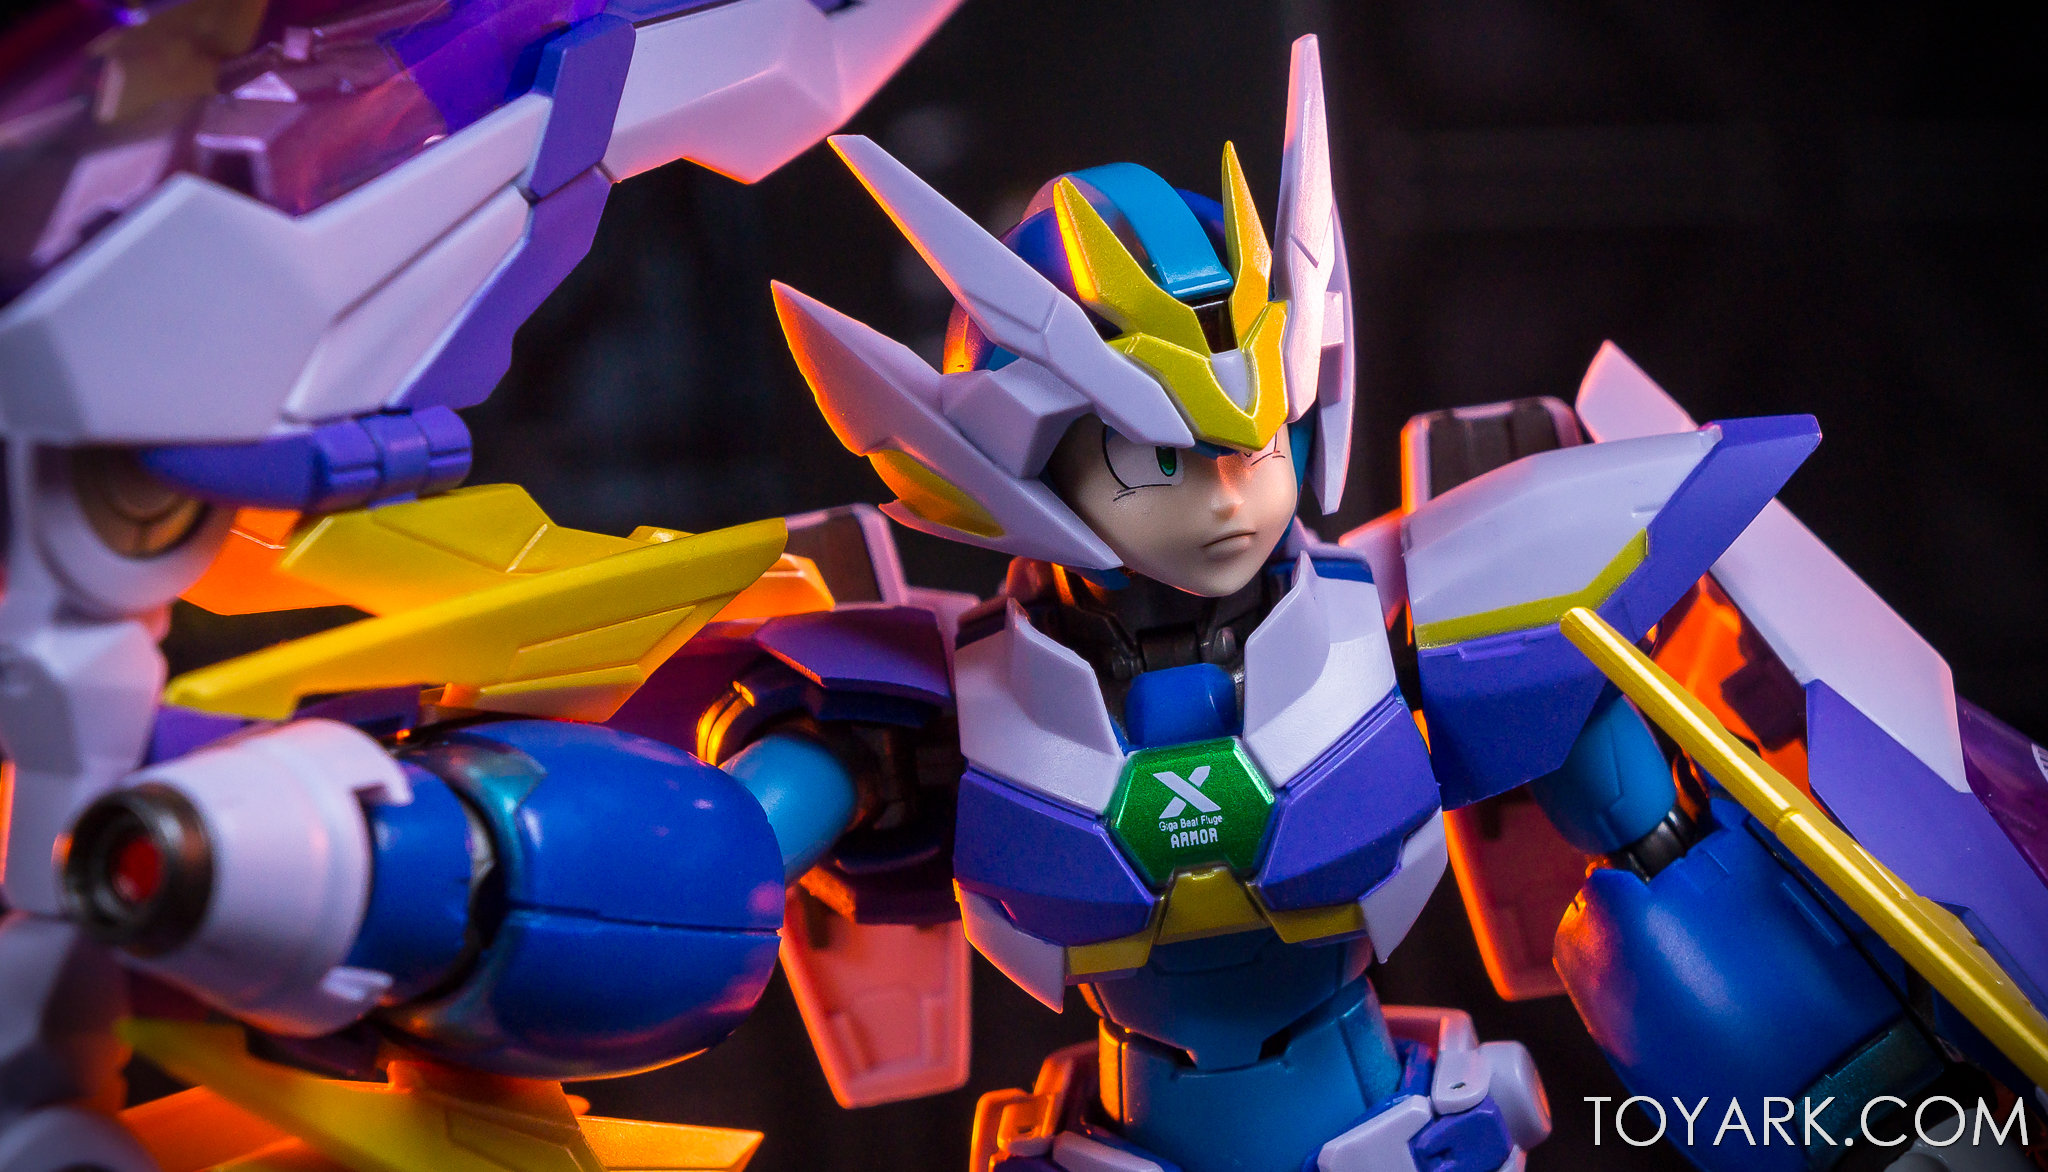 http://news.toyark.com/wp-content/uploads/sites/4/2018/01/Mega-Man-X-Giga-Armor-00056.jpg